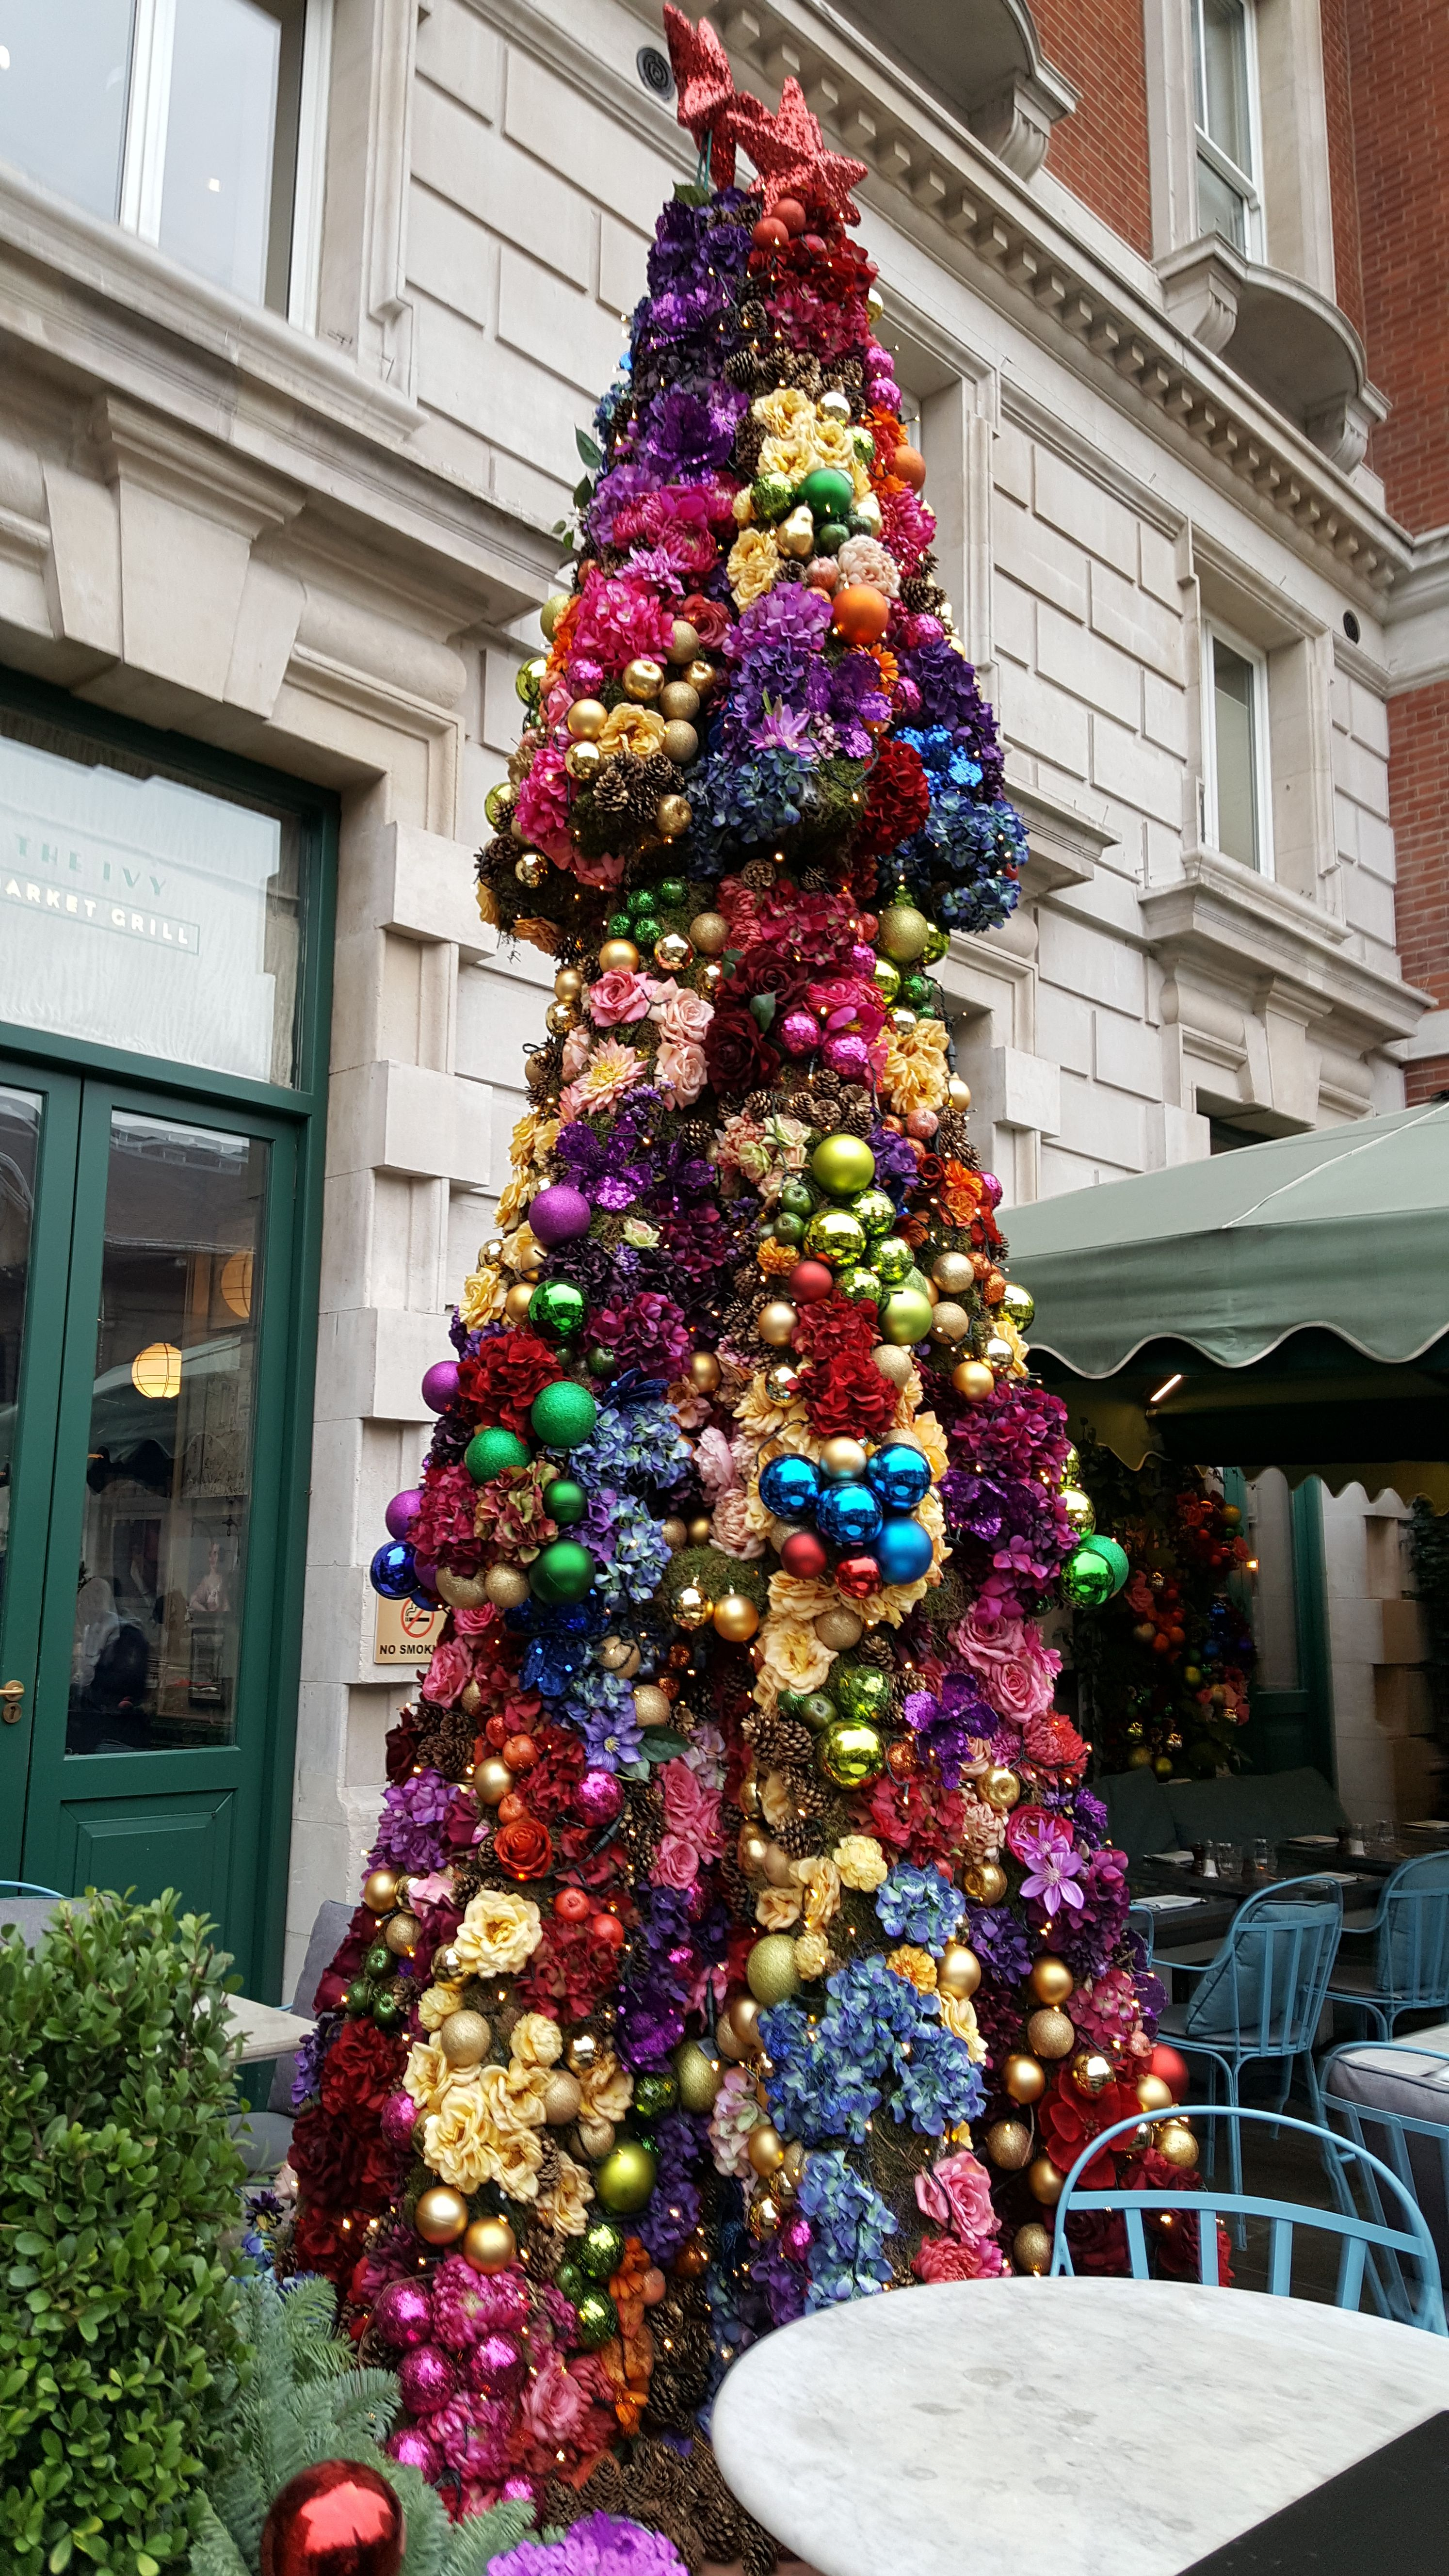 Tree outside The Ivy Market Grill, Covent Garden, London